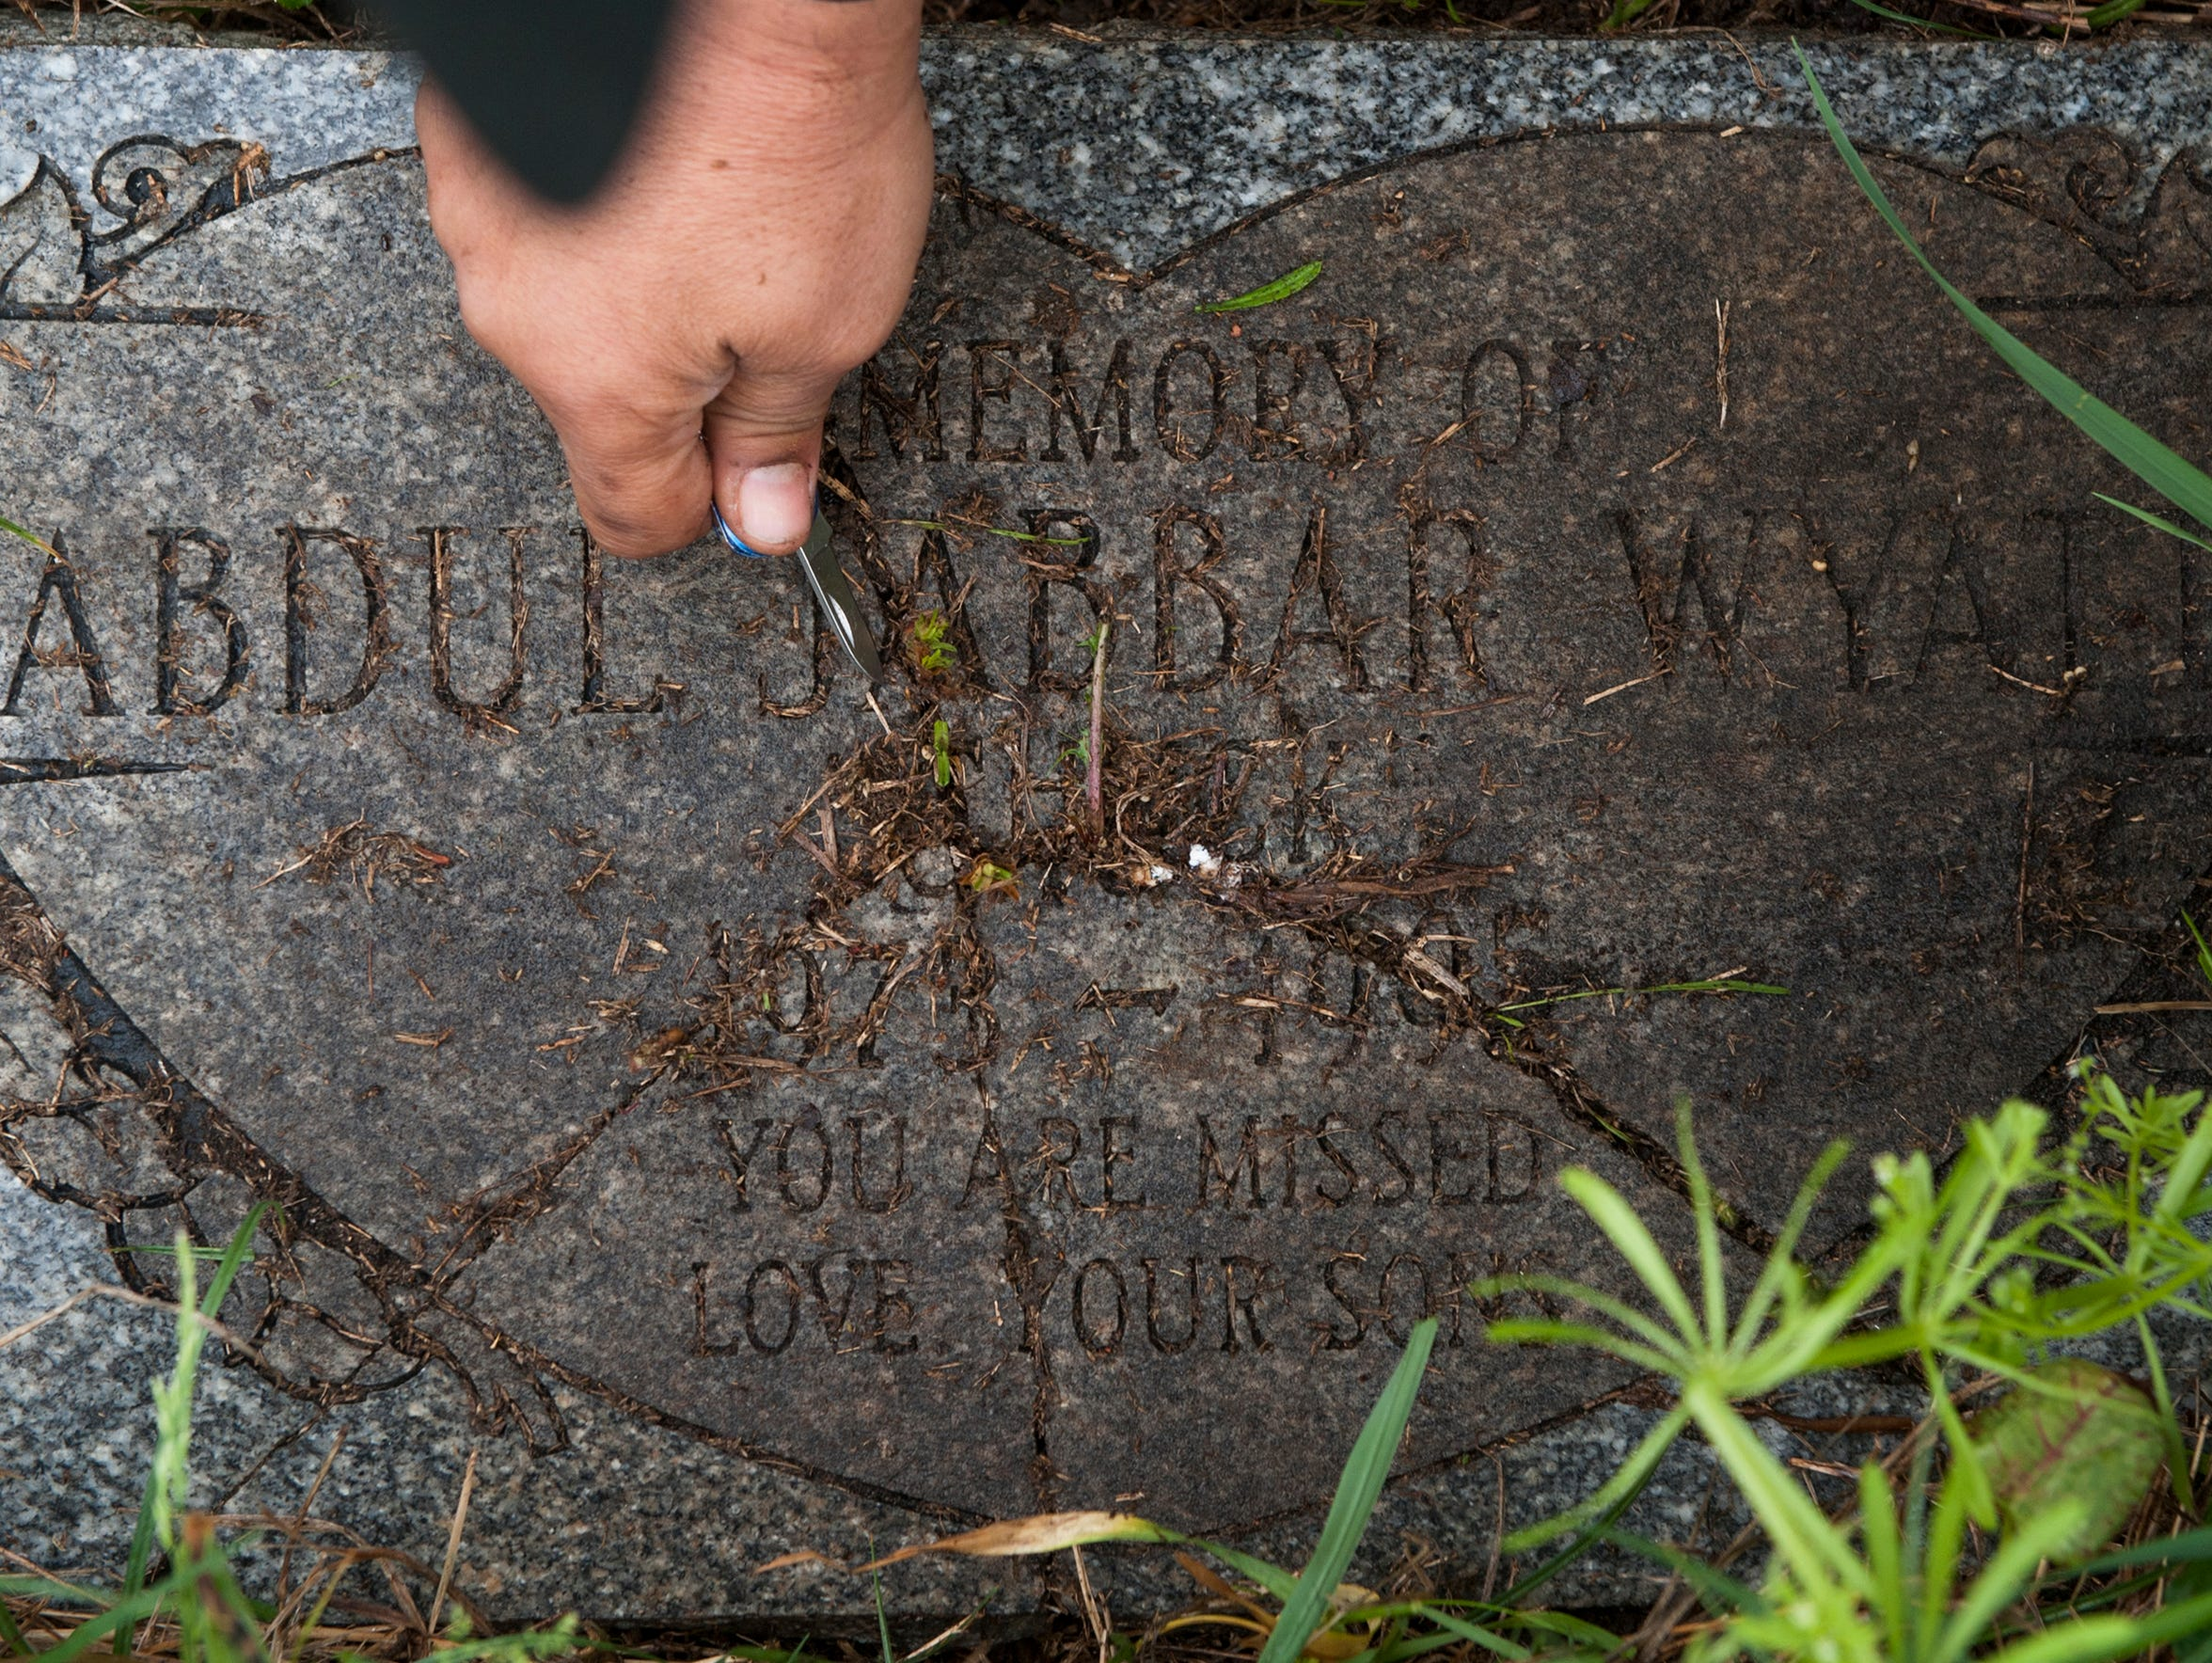 Donald Wyatt clears weeds from the gravestone of his